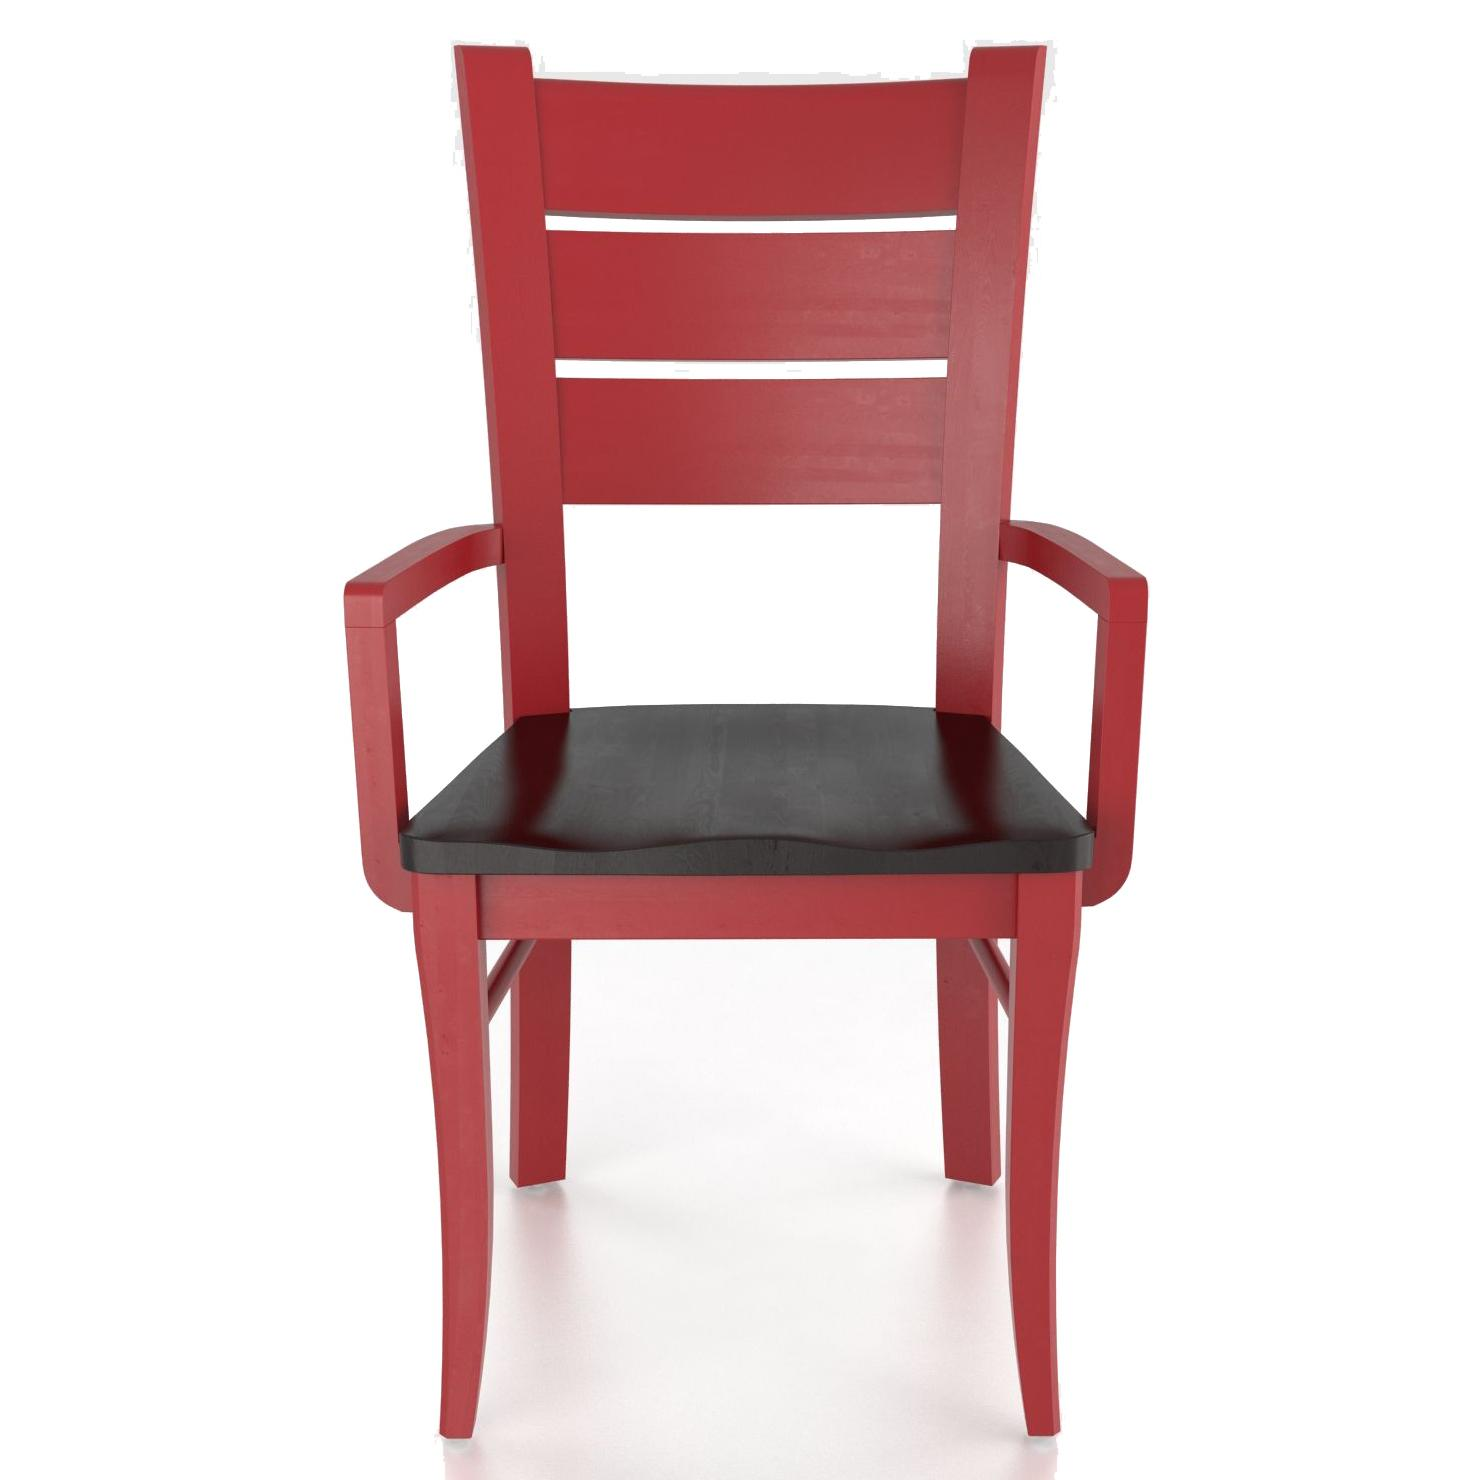 Custom Dining <b>Customizable</b> Arm Chair - Wood Seat by Canadel at Saugerties Furniture Mart